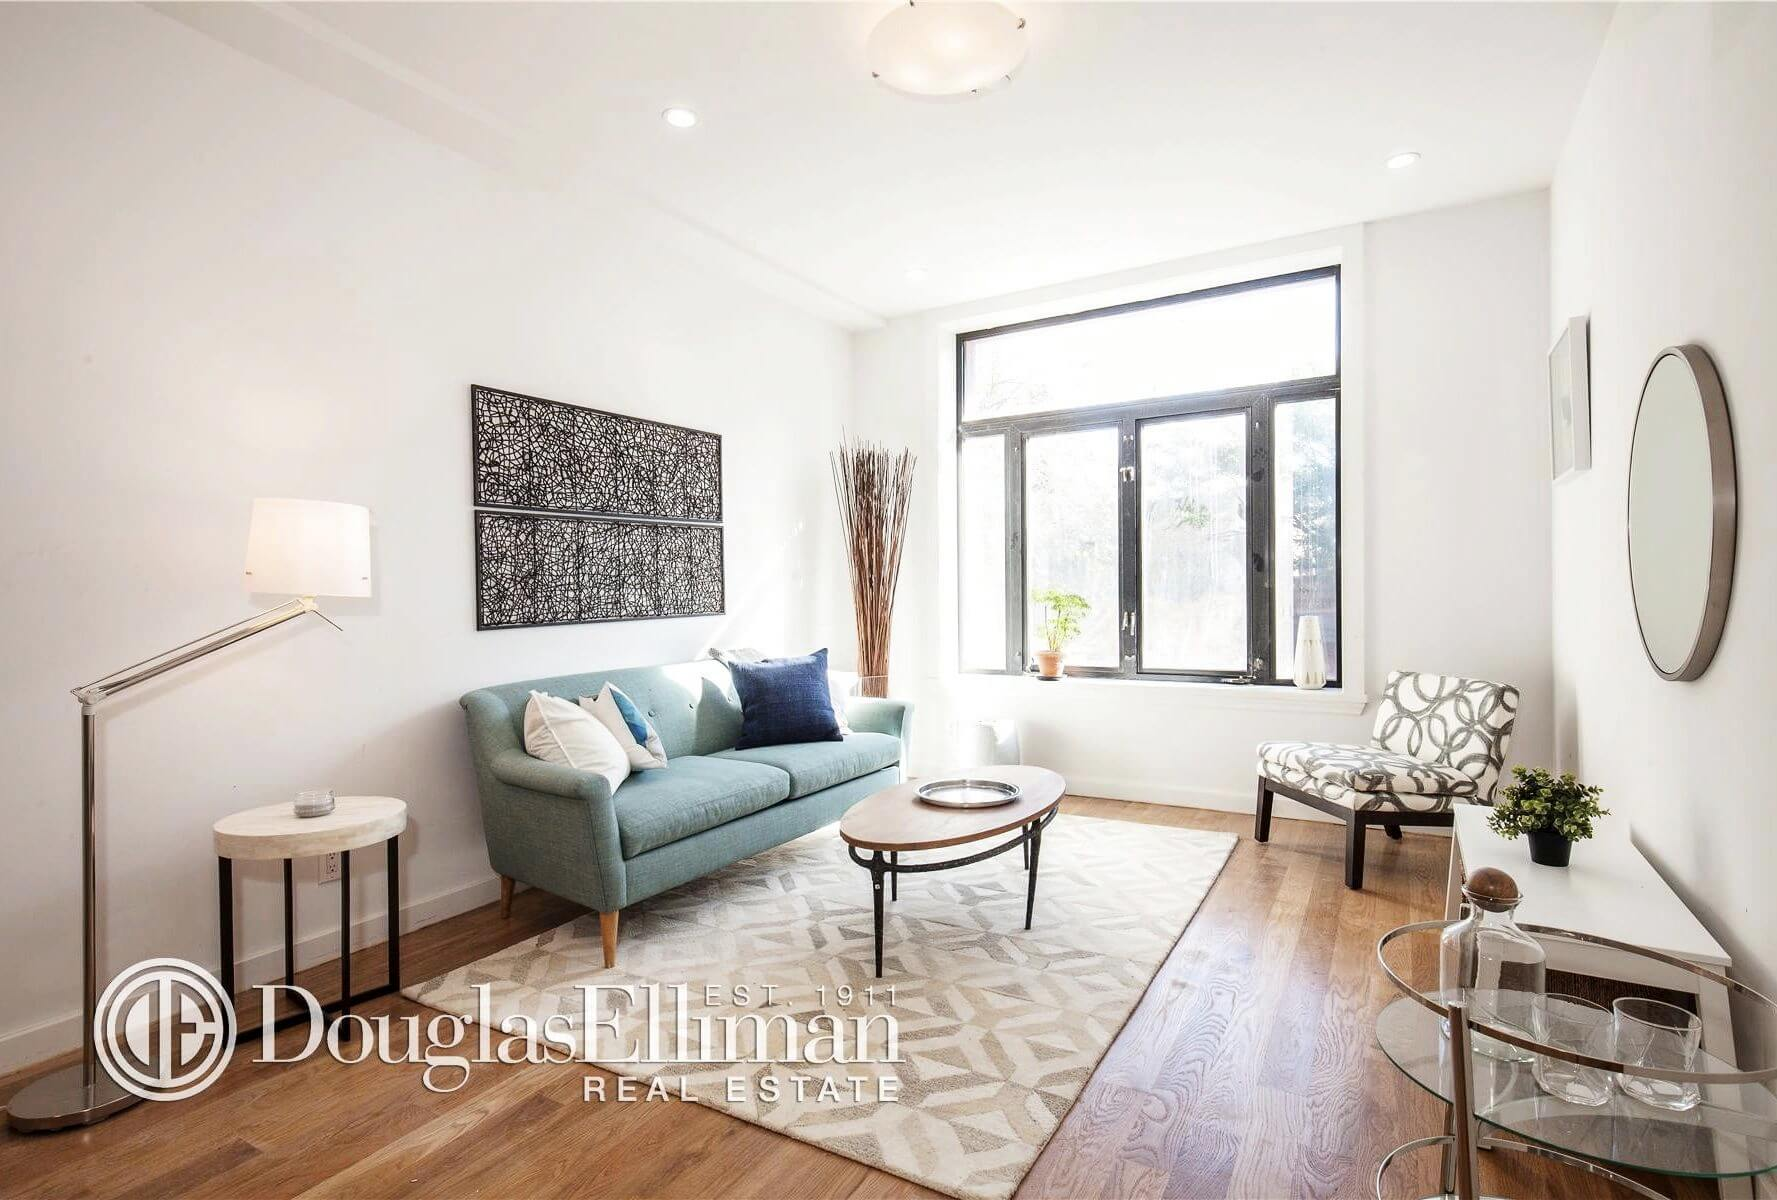 Apartment for sale 244 Franklin Avenue Brooklyn Living Room